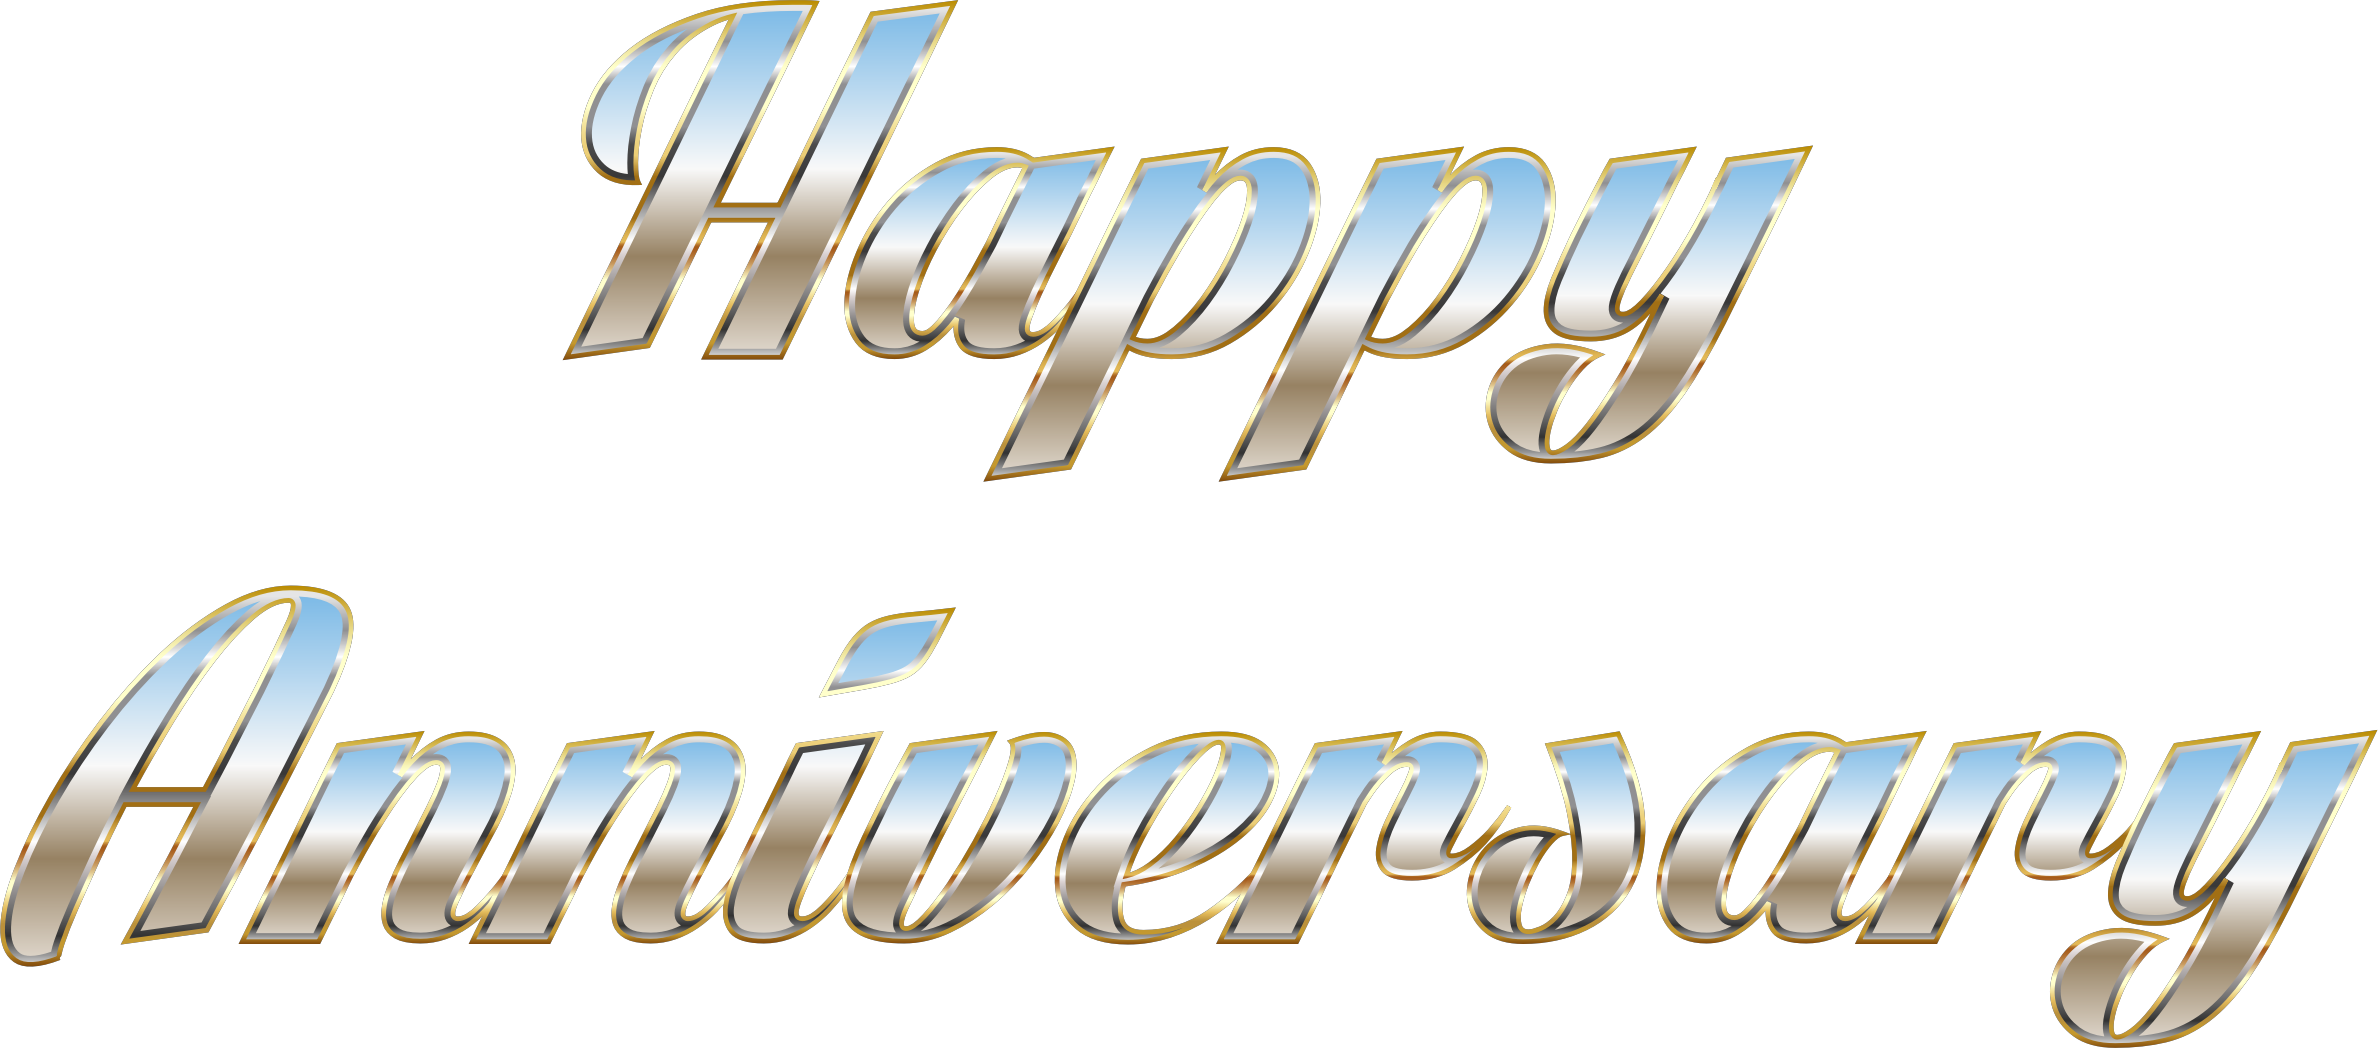 Happy aniversary png. Anniversary typography no background